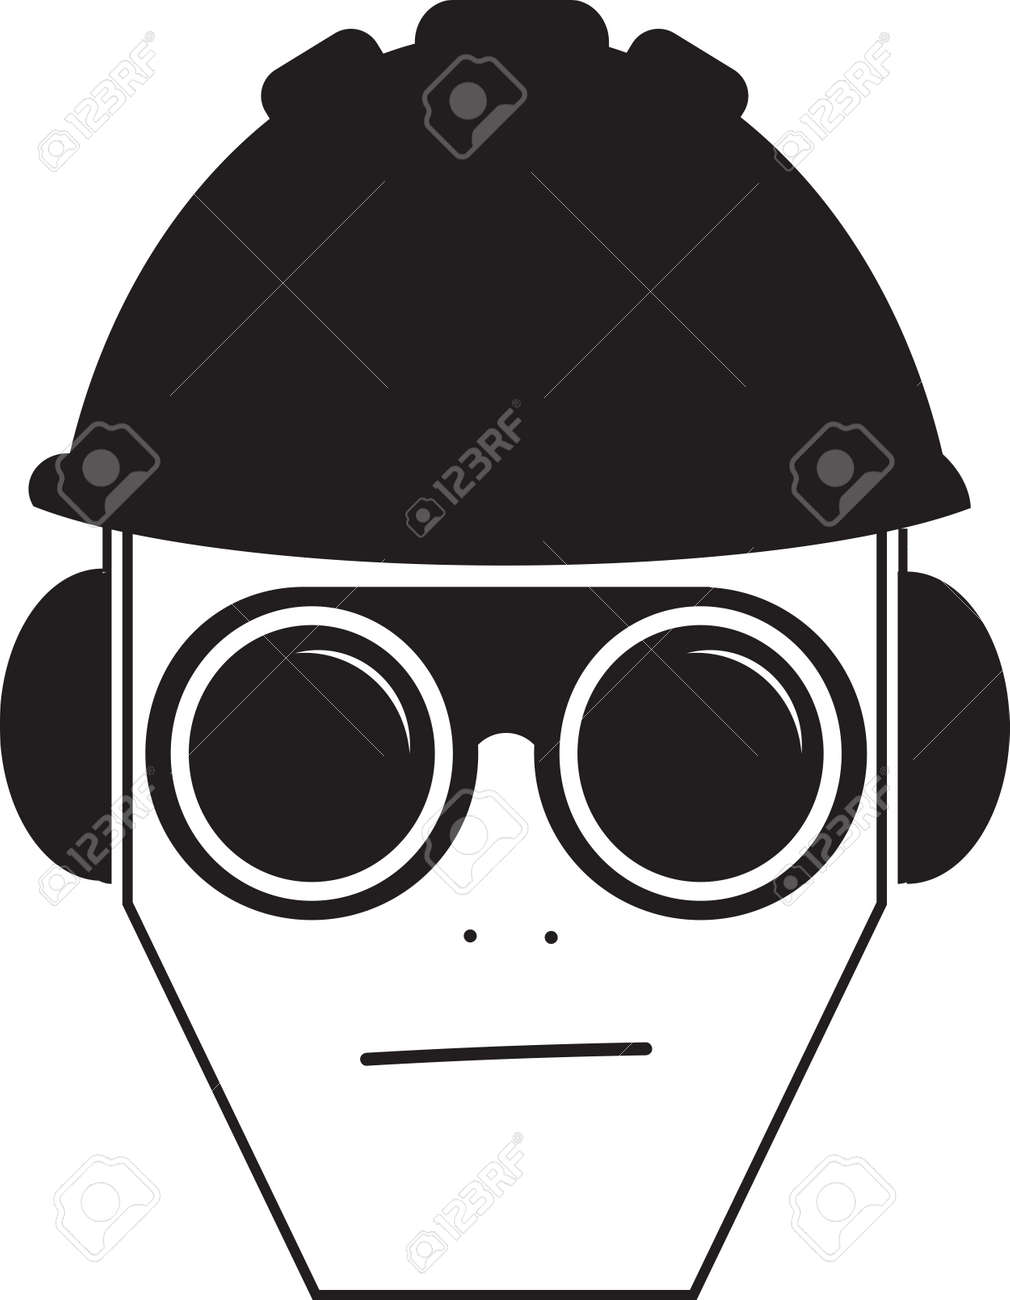 Job safety icon illustration vector, worker wearing glasses, helmet and ear protection - 164755814